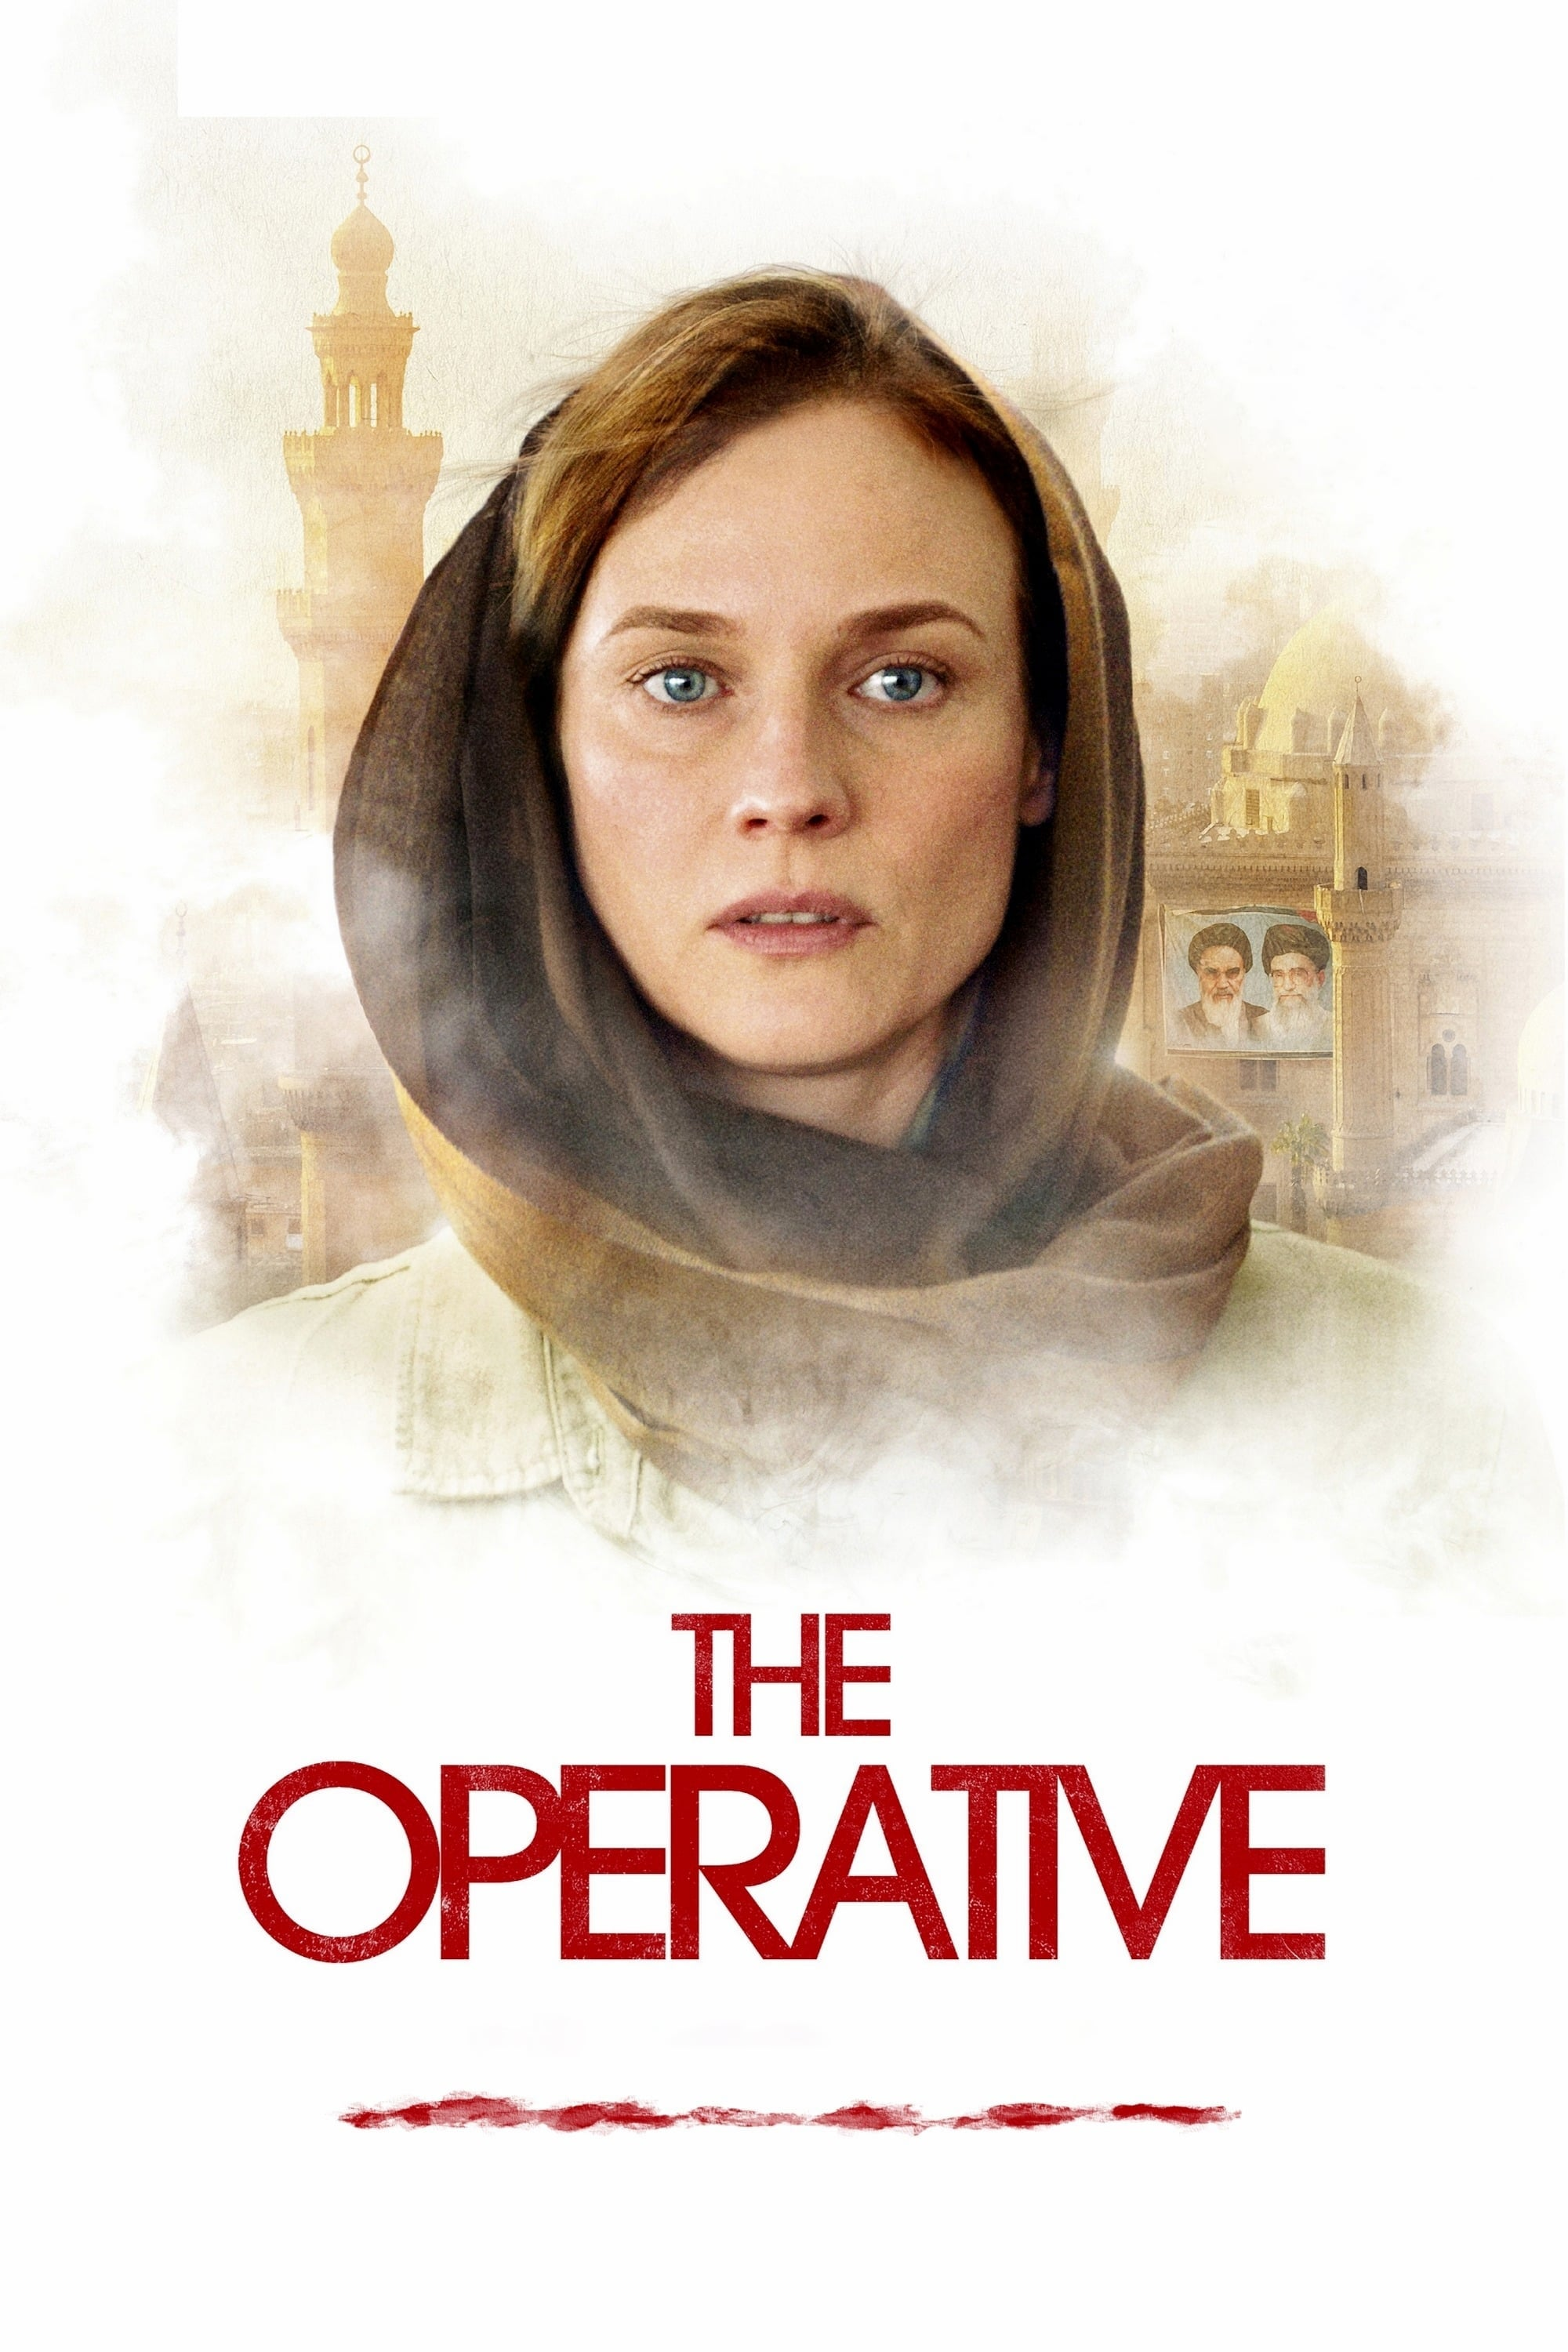 The Operative (2019) WEB-DL 1080P LATINO/INGLES